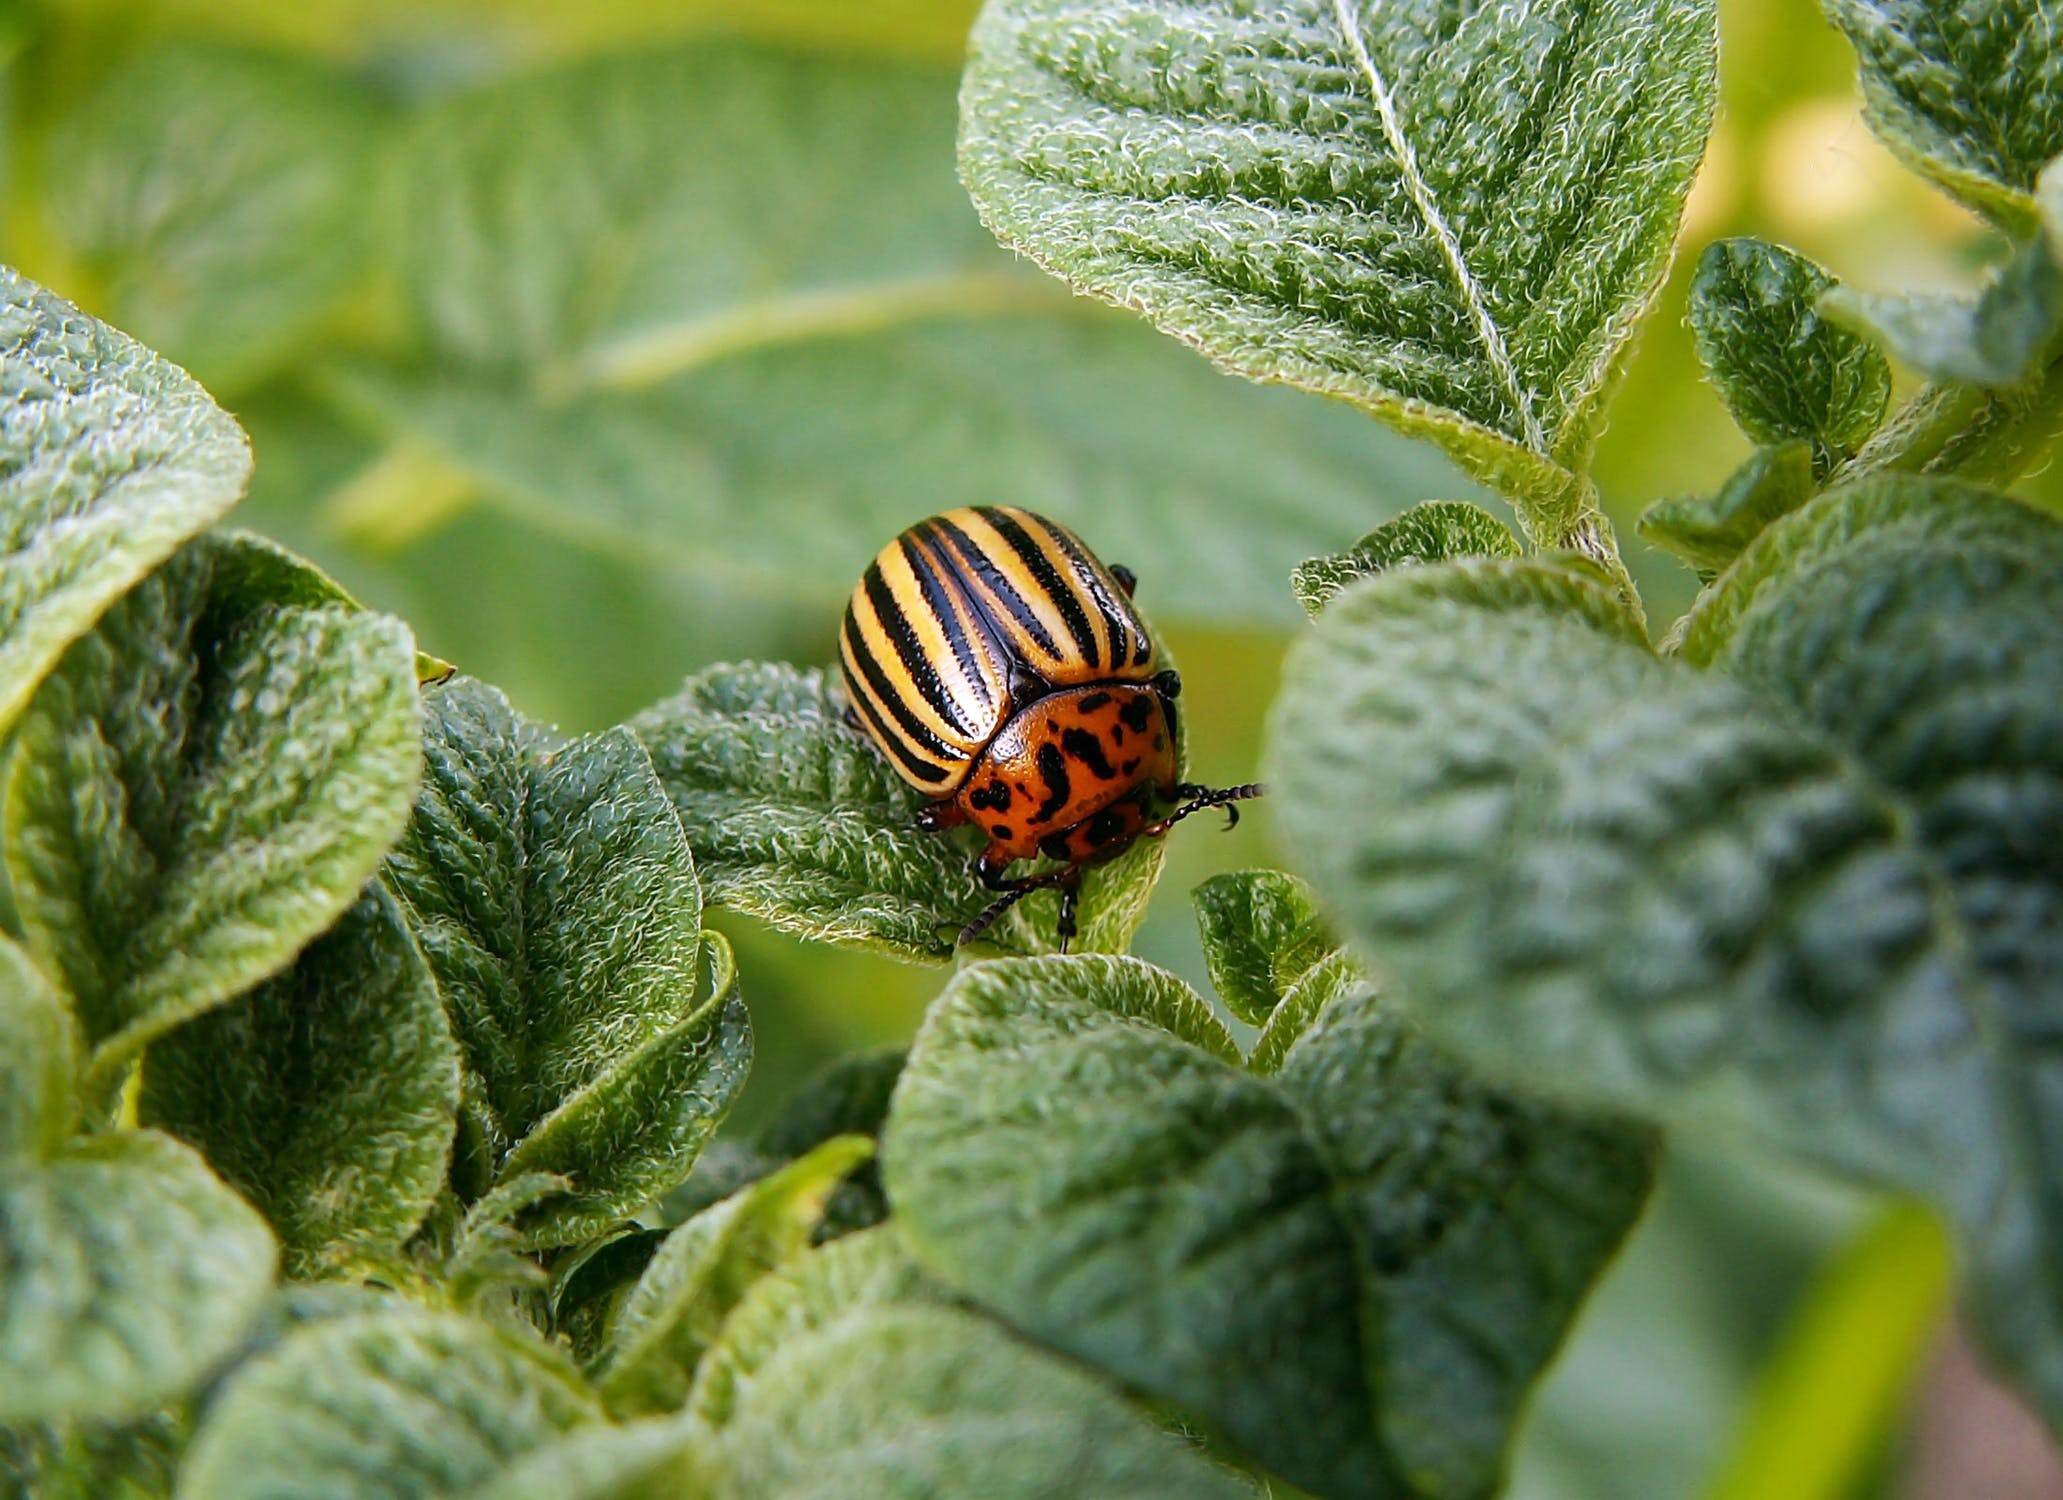 Beetles can be a real headache for gardeners. They have the ability to take out a whole crop if there are enough of them. Washing leaves with insecticidal soap can effectively repel them.